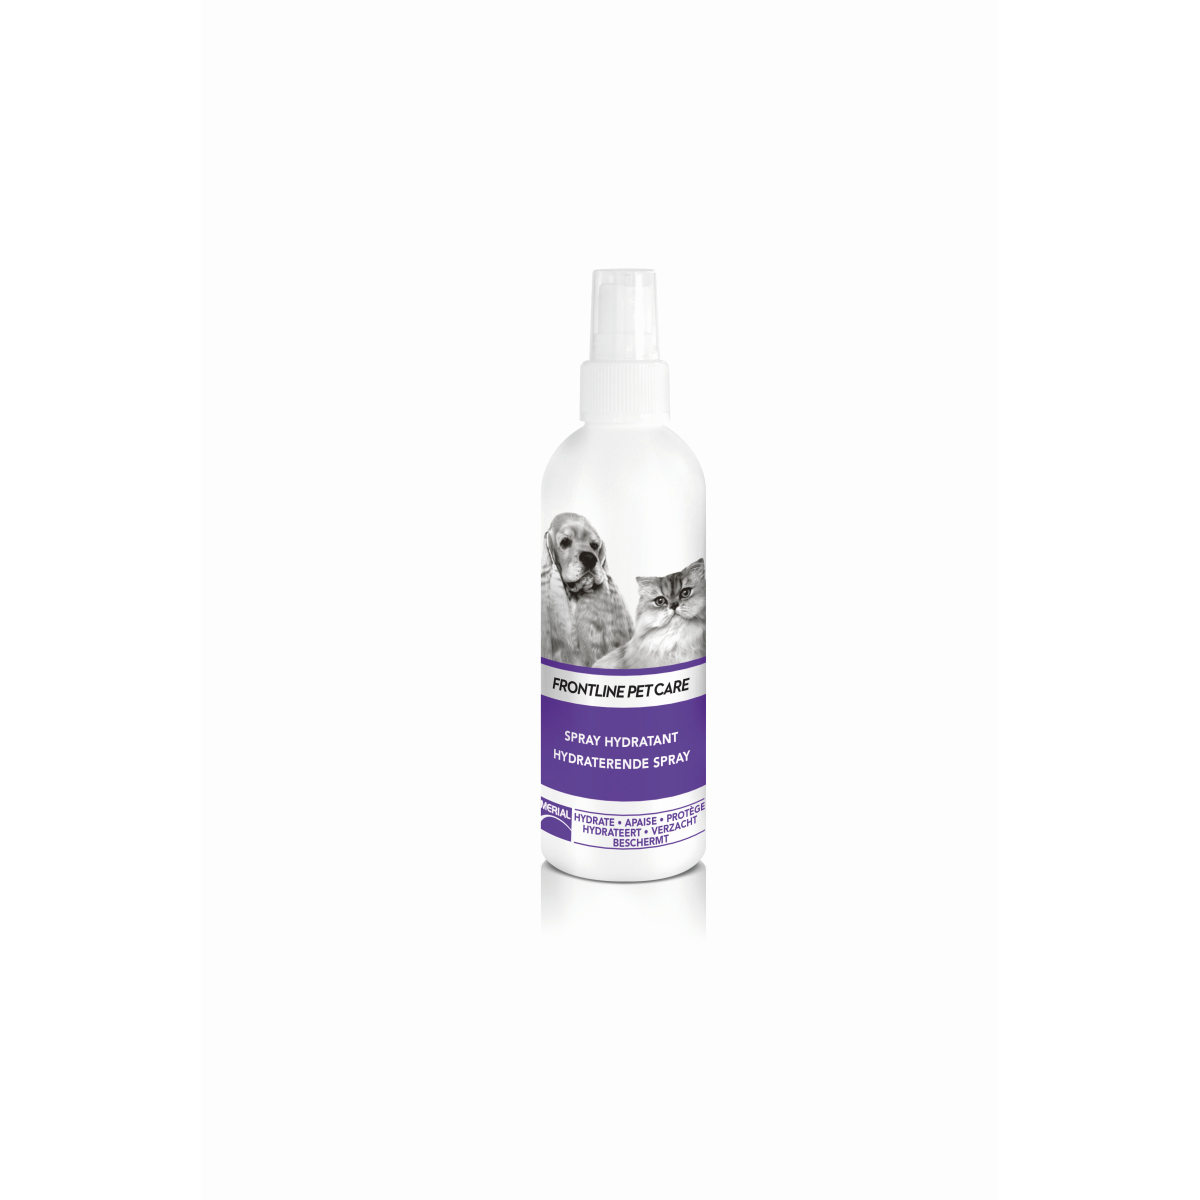 Pet care hydraterende spray wit/paars 150 ml